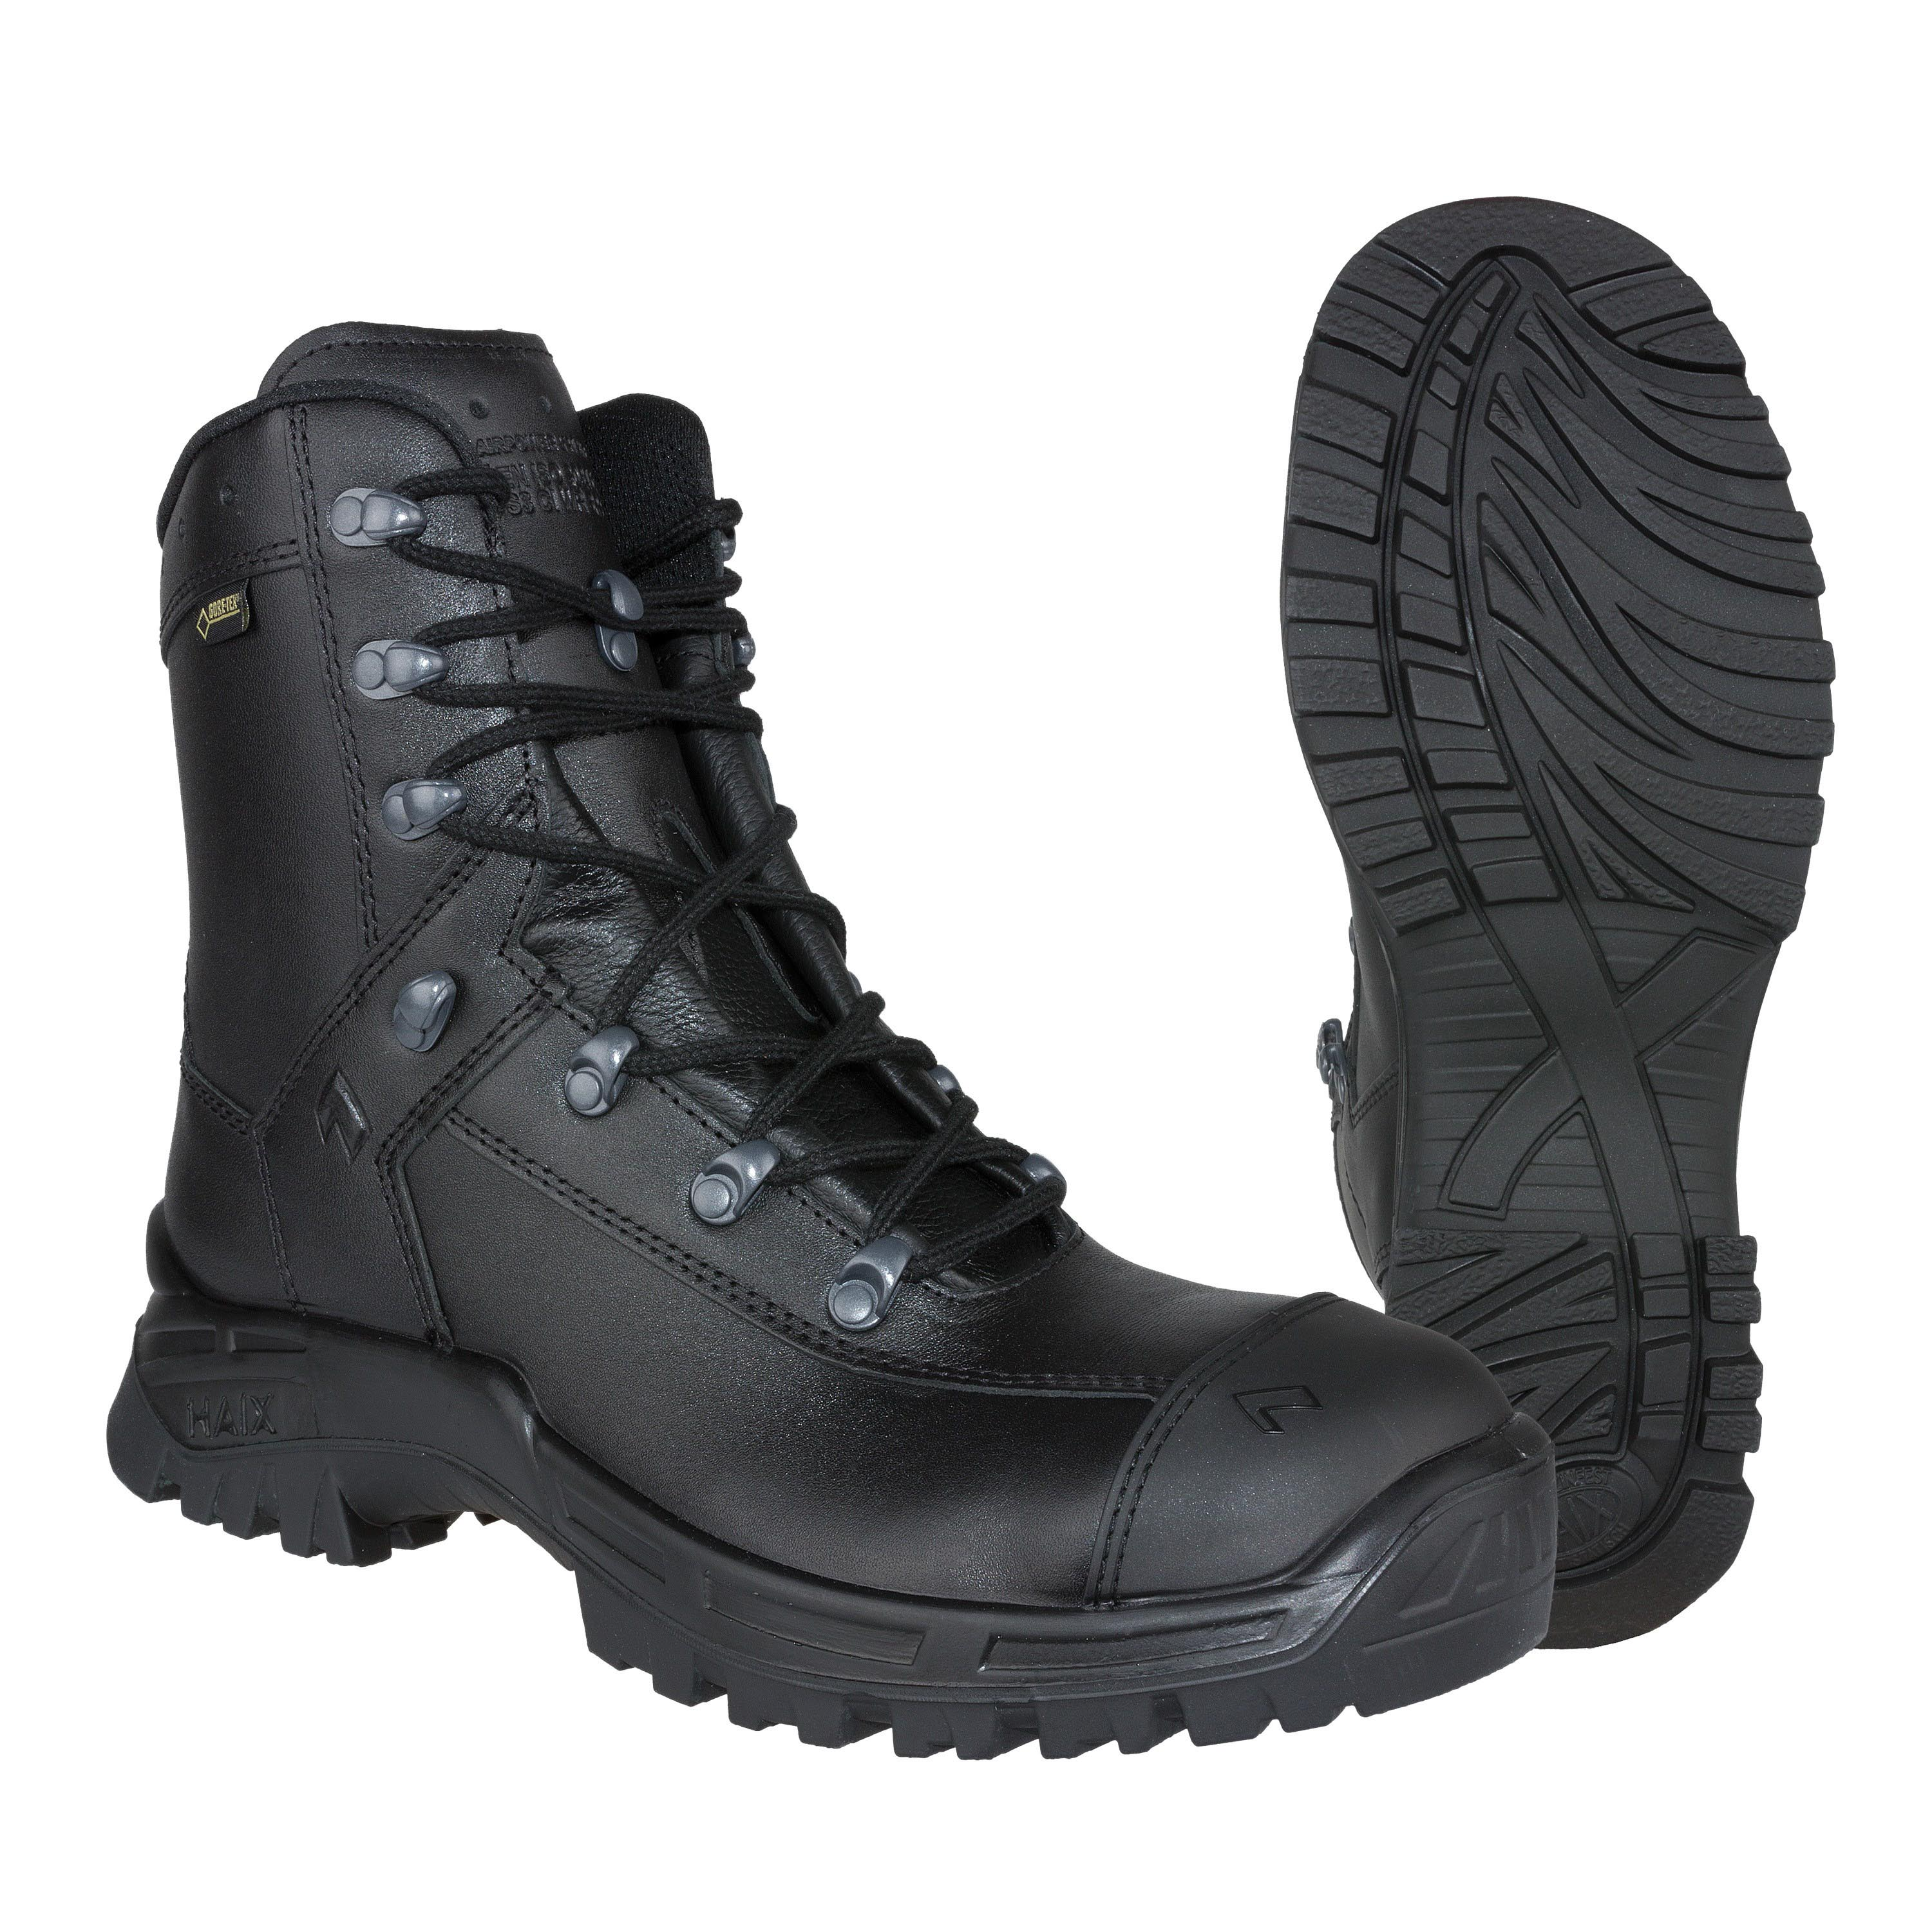 Boot Haix Airpower X21 high